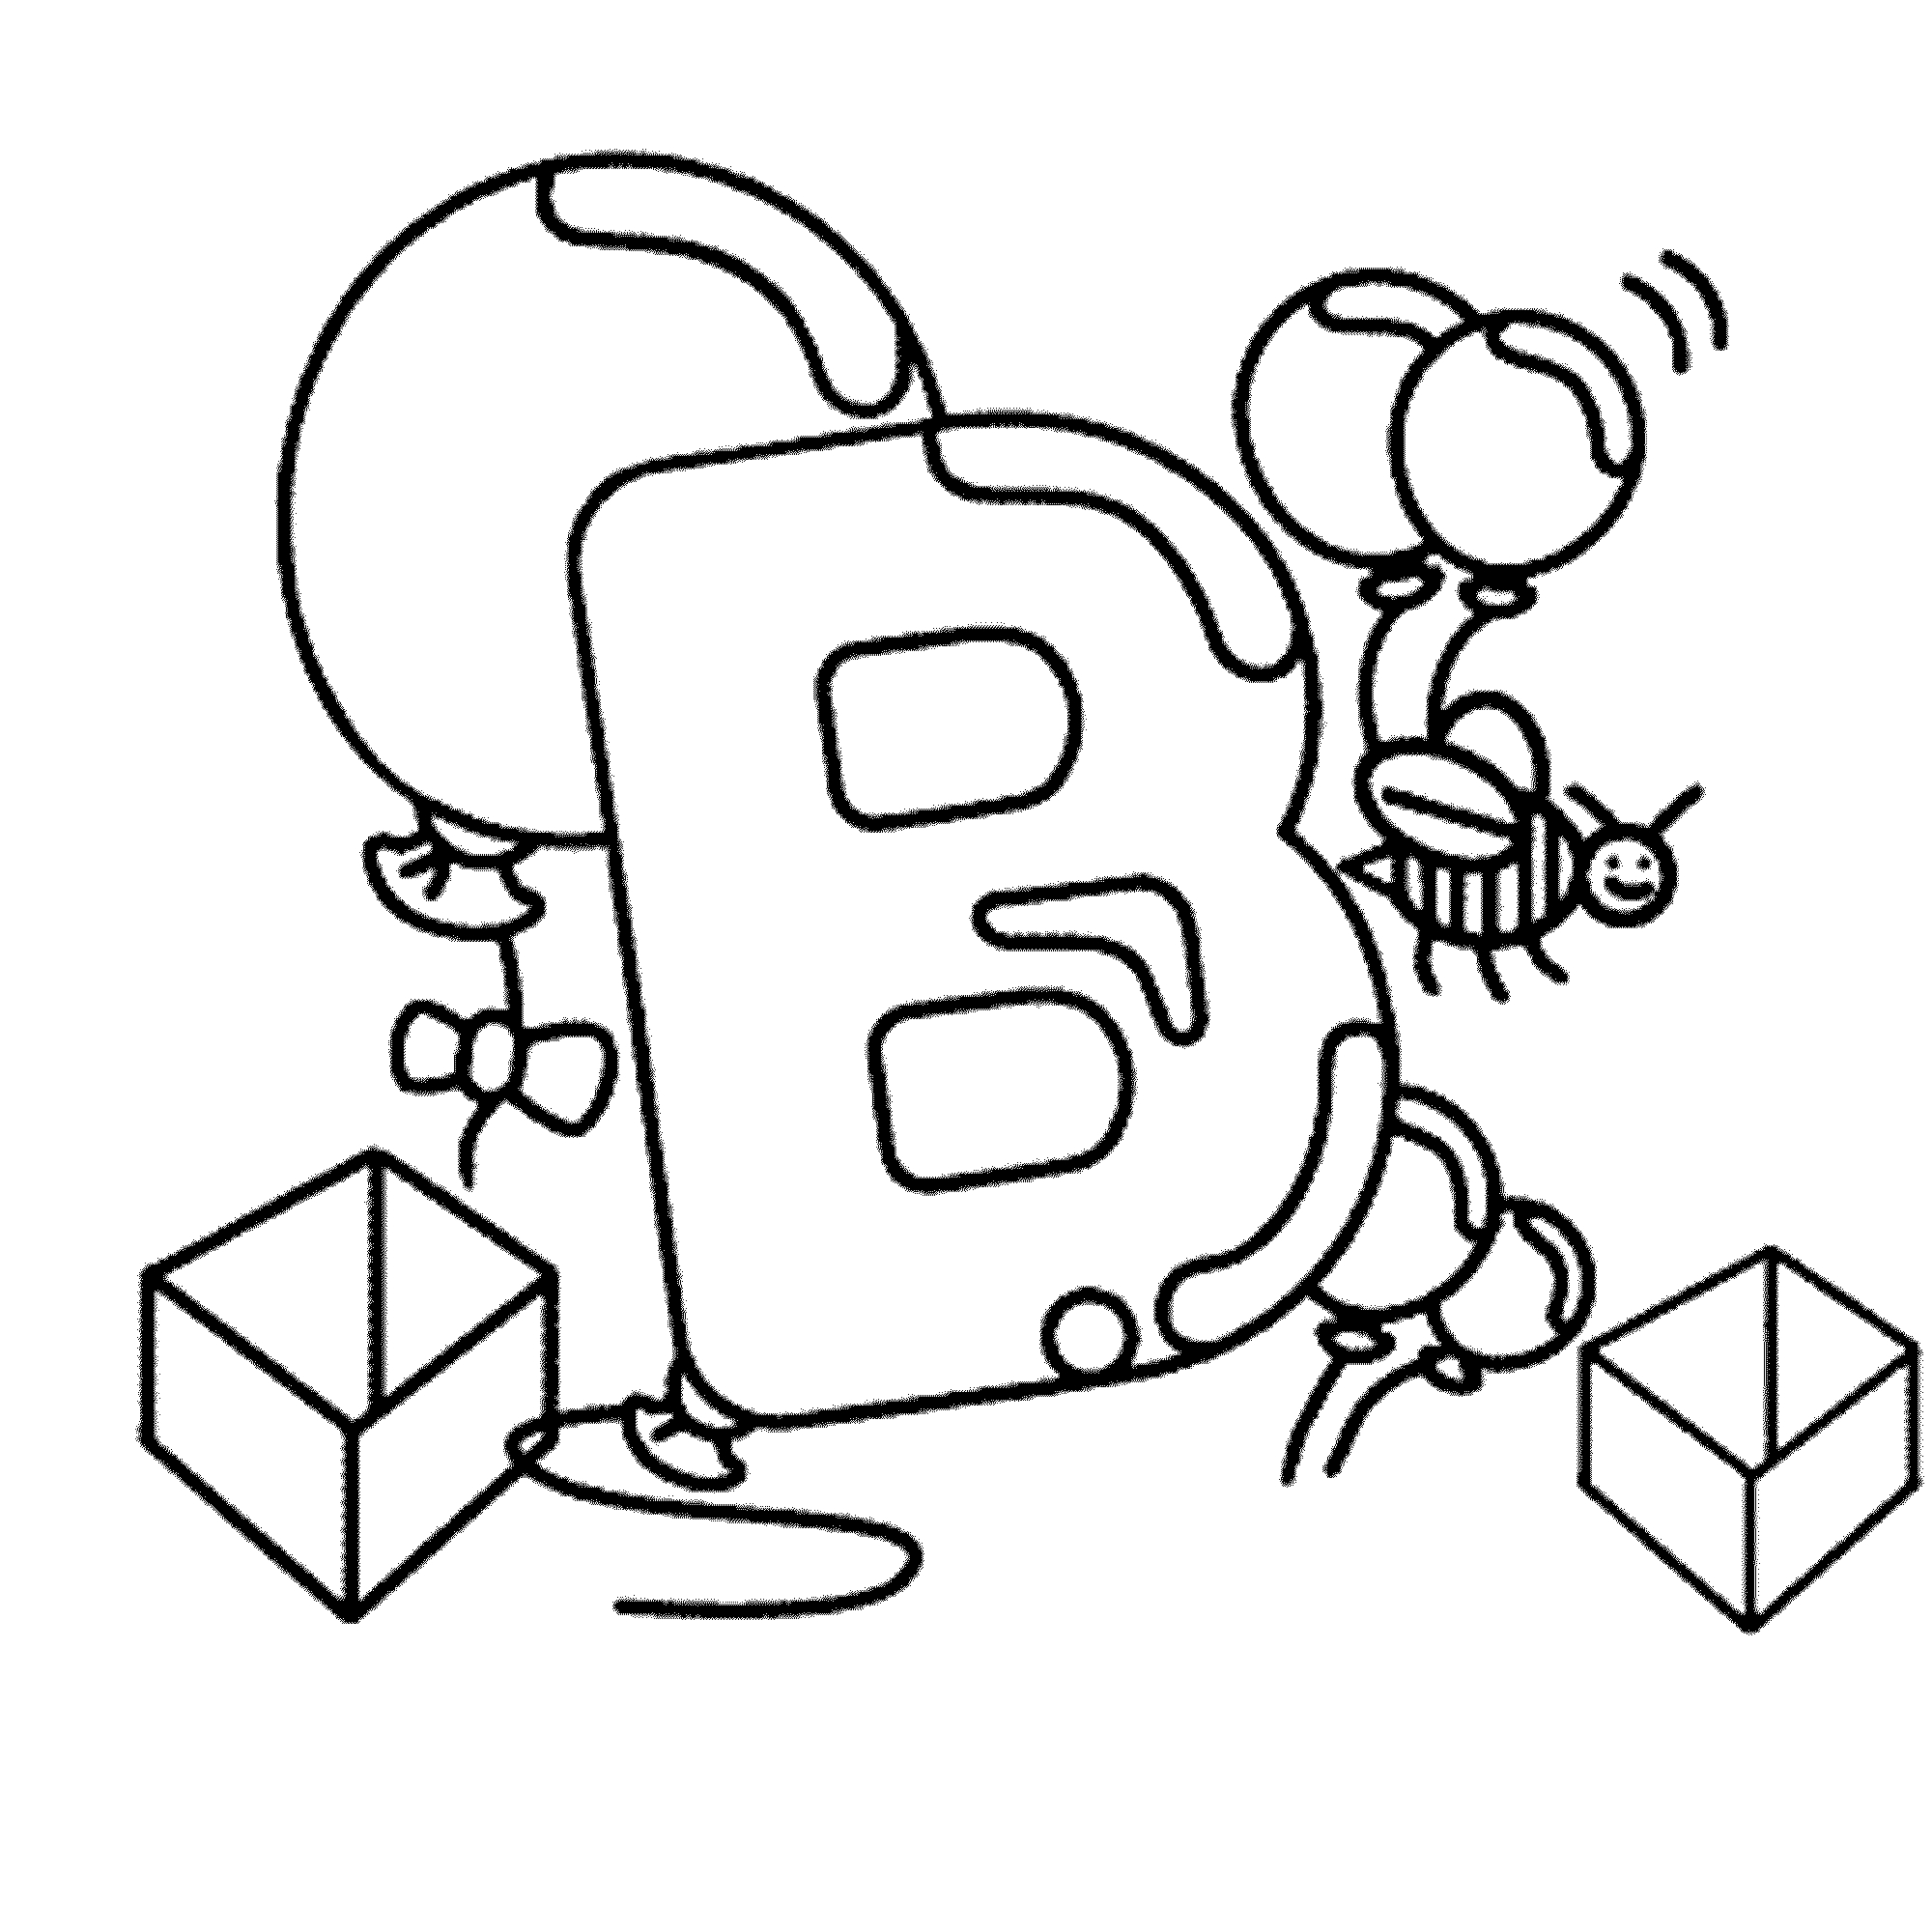 2000x2000 Unique Letter B Coloring Pages Collection Printable Coloring Sheet